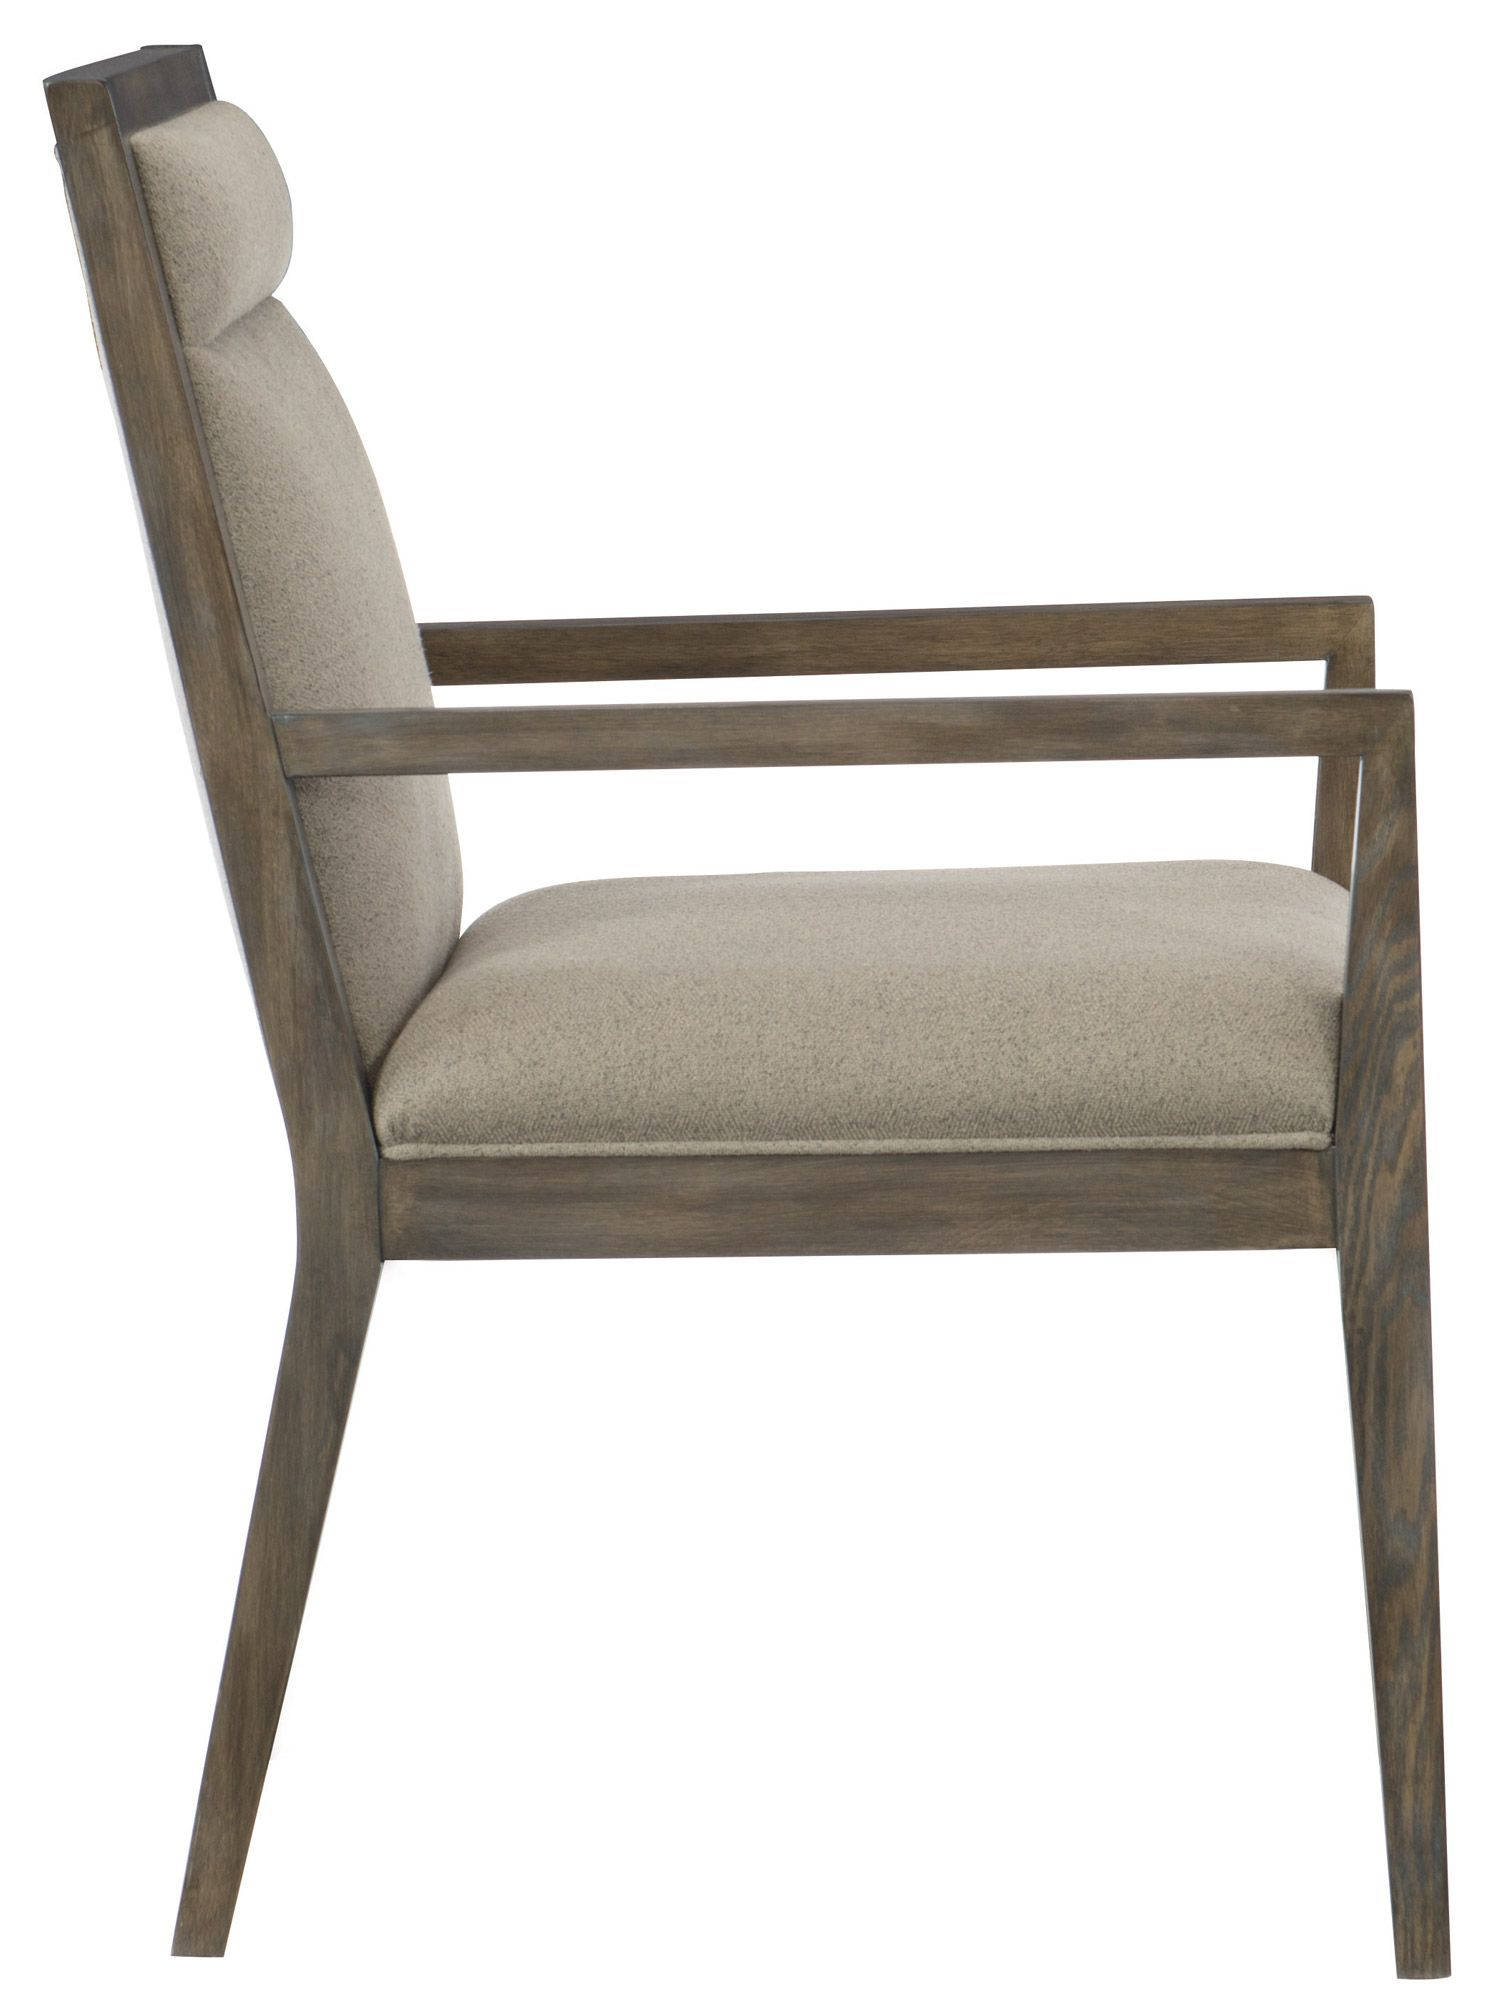 Arm Chair Bernhardt Chair Furniture Dining Chairs Dining Chairs